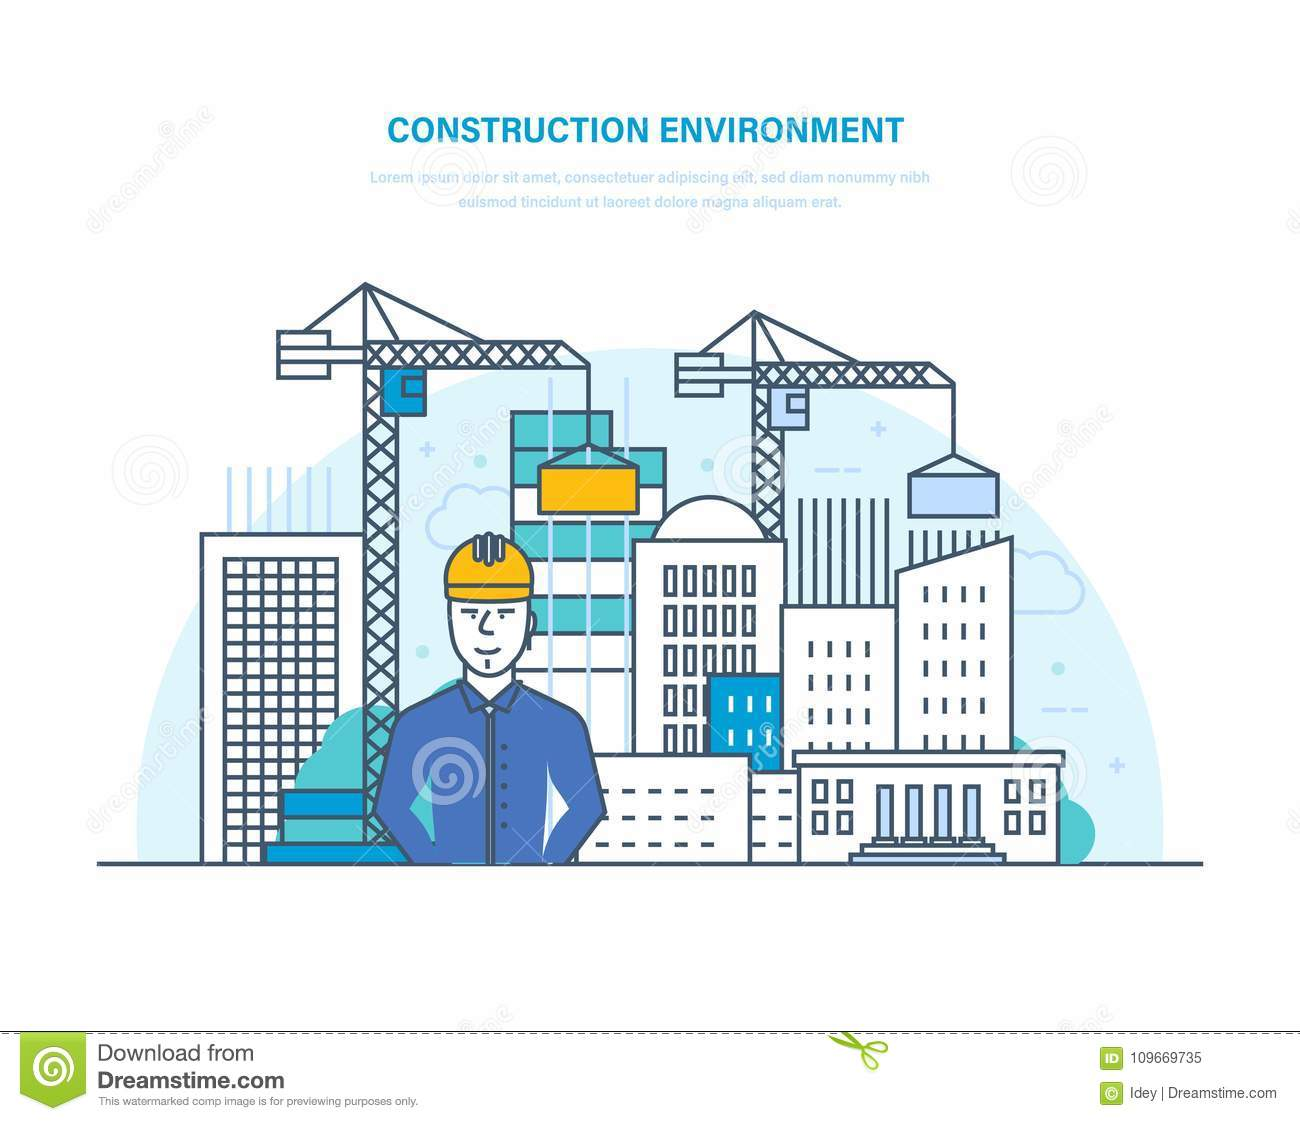 Construction environment. Control for process building home. Building construction, engineering.